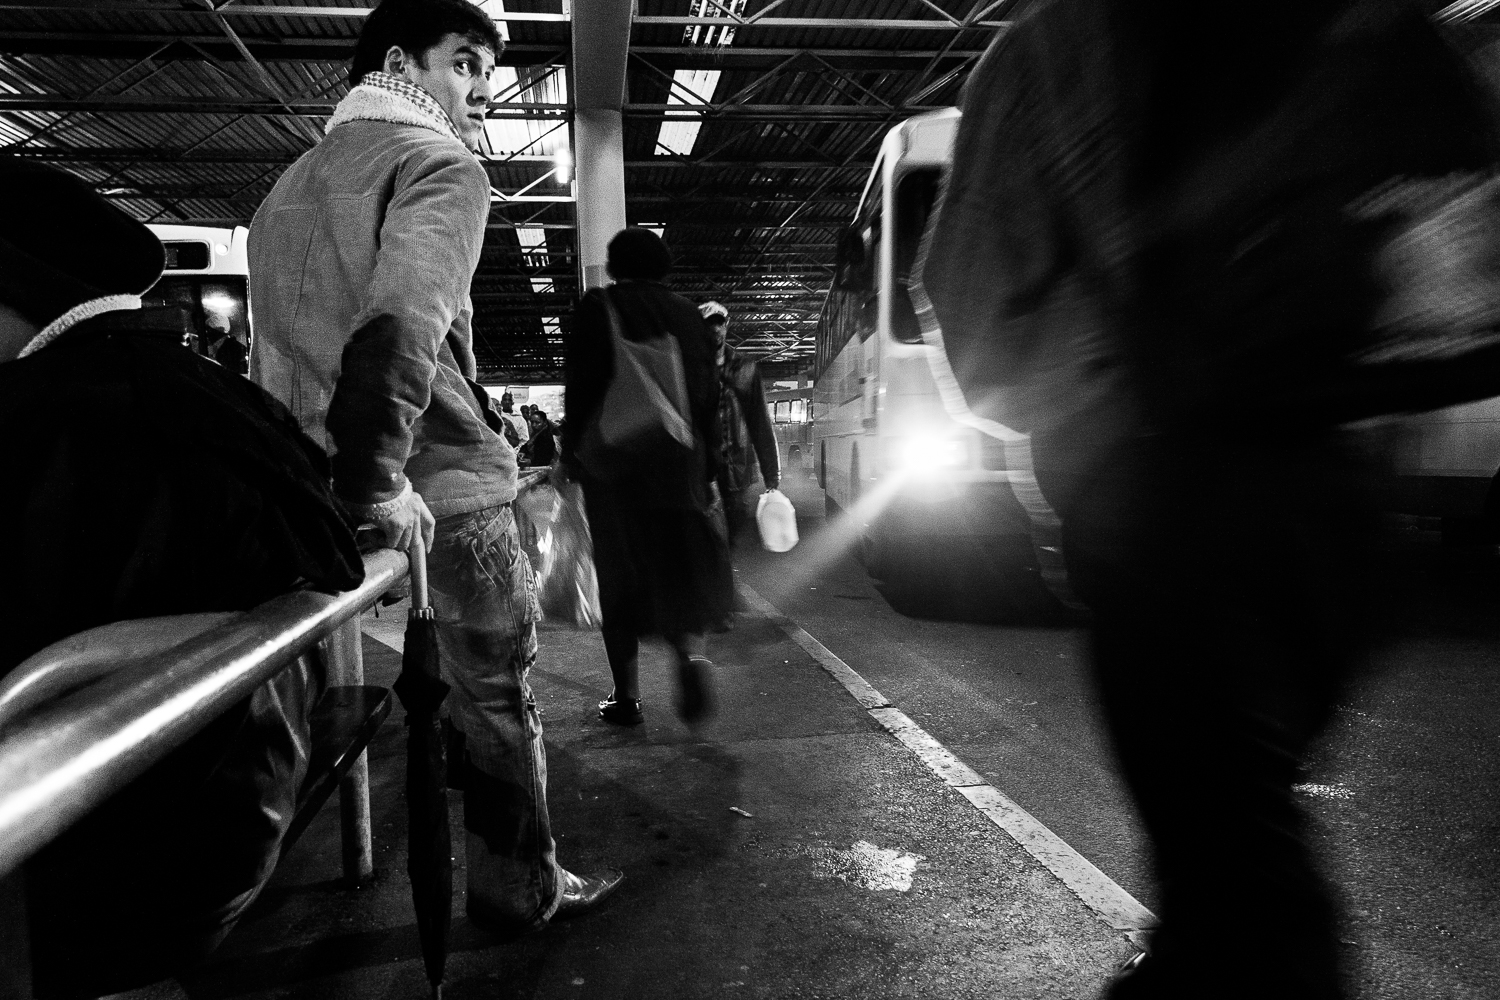 A commuter is waiting on the bus, Cape Town, 2010.